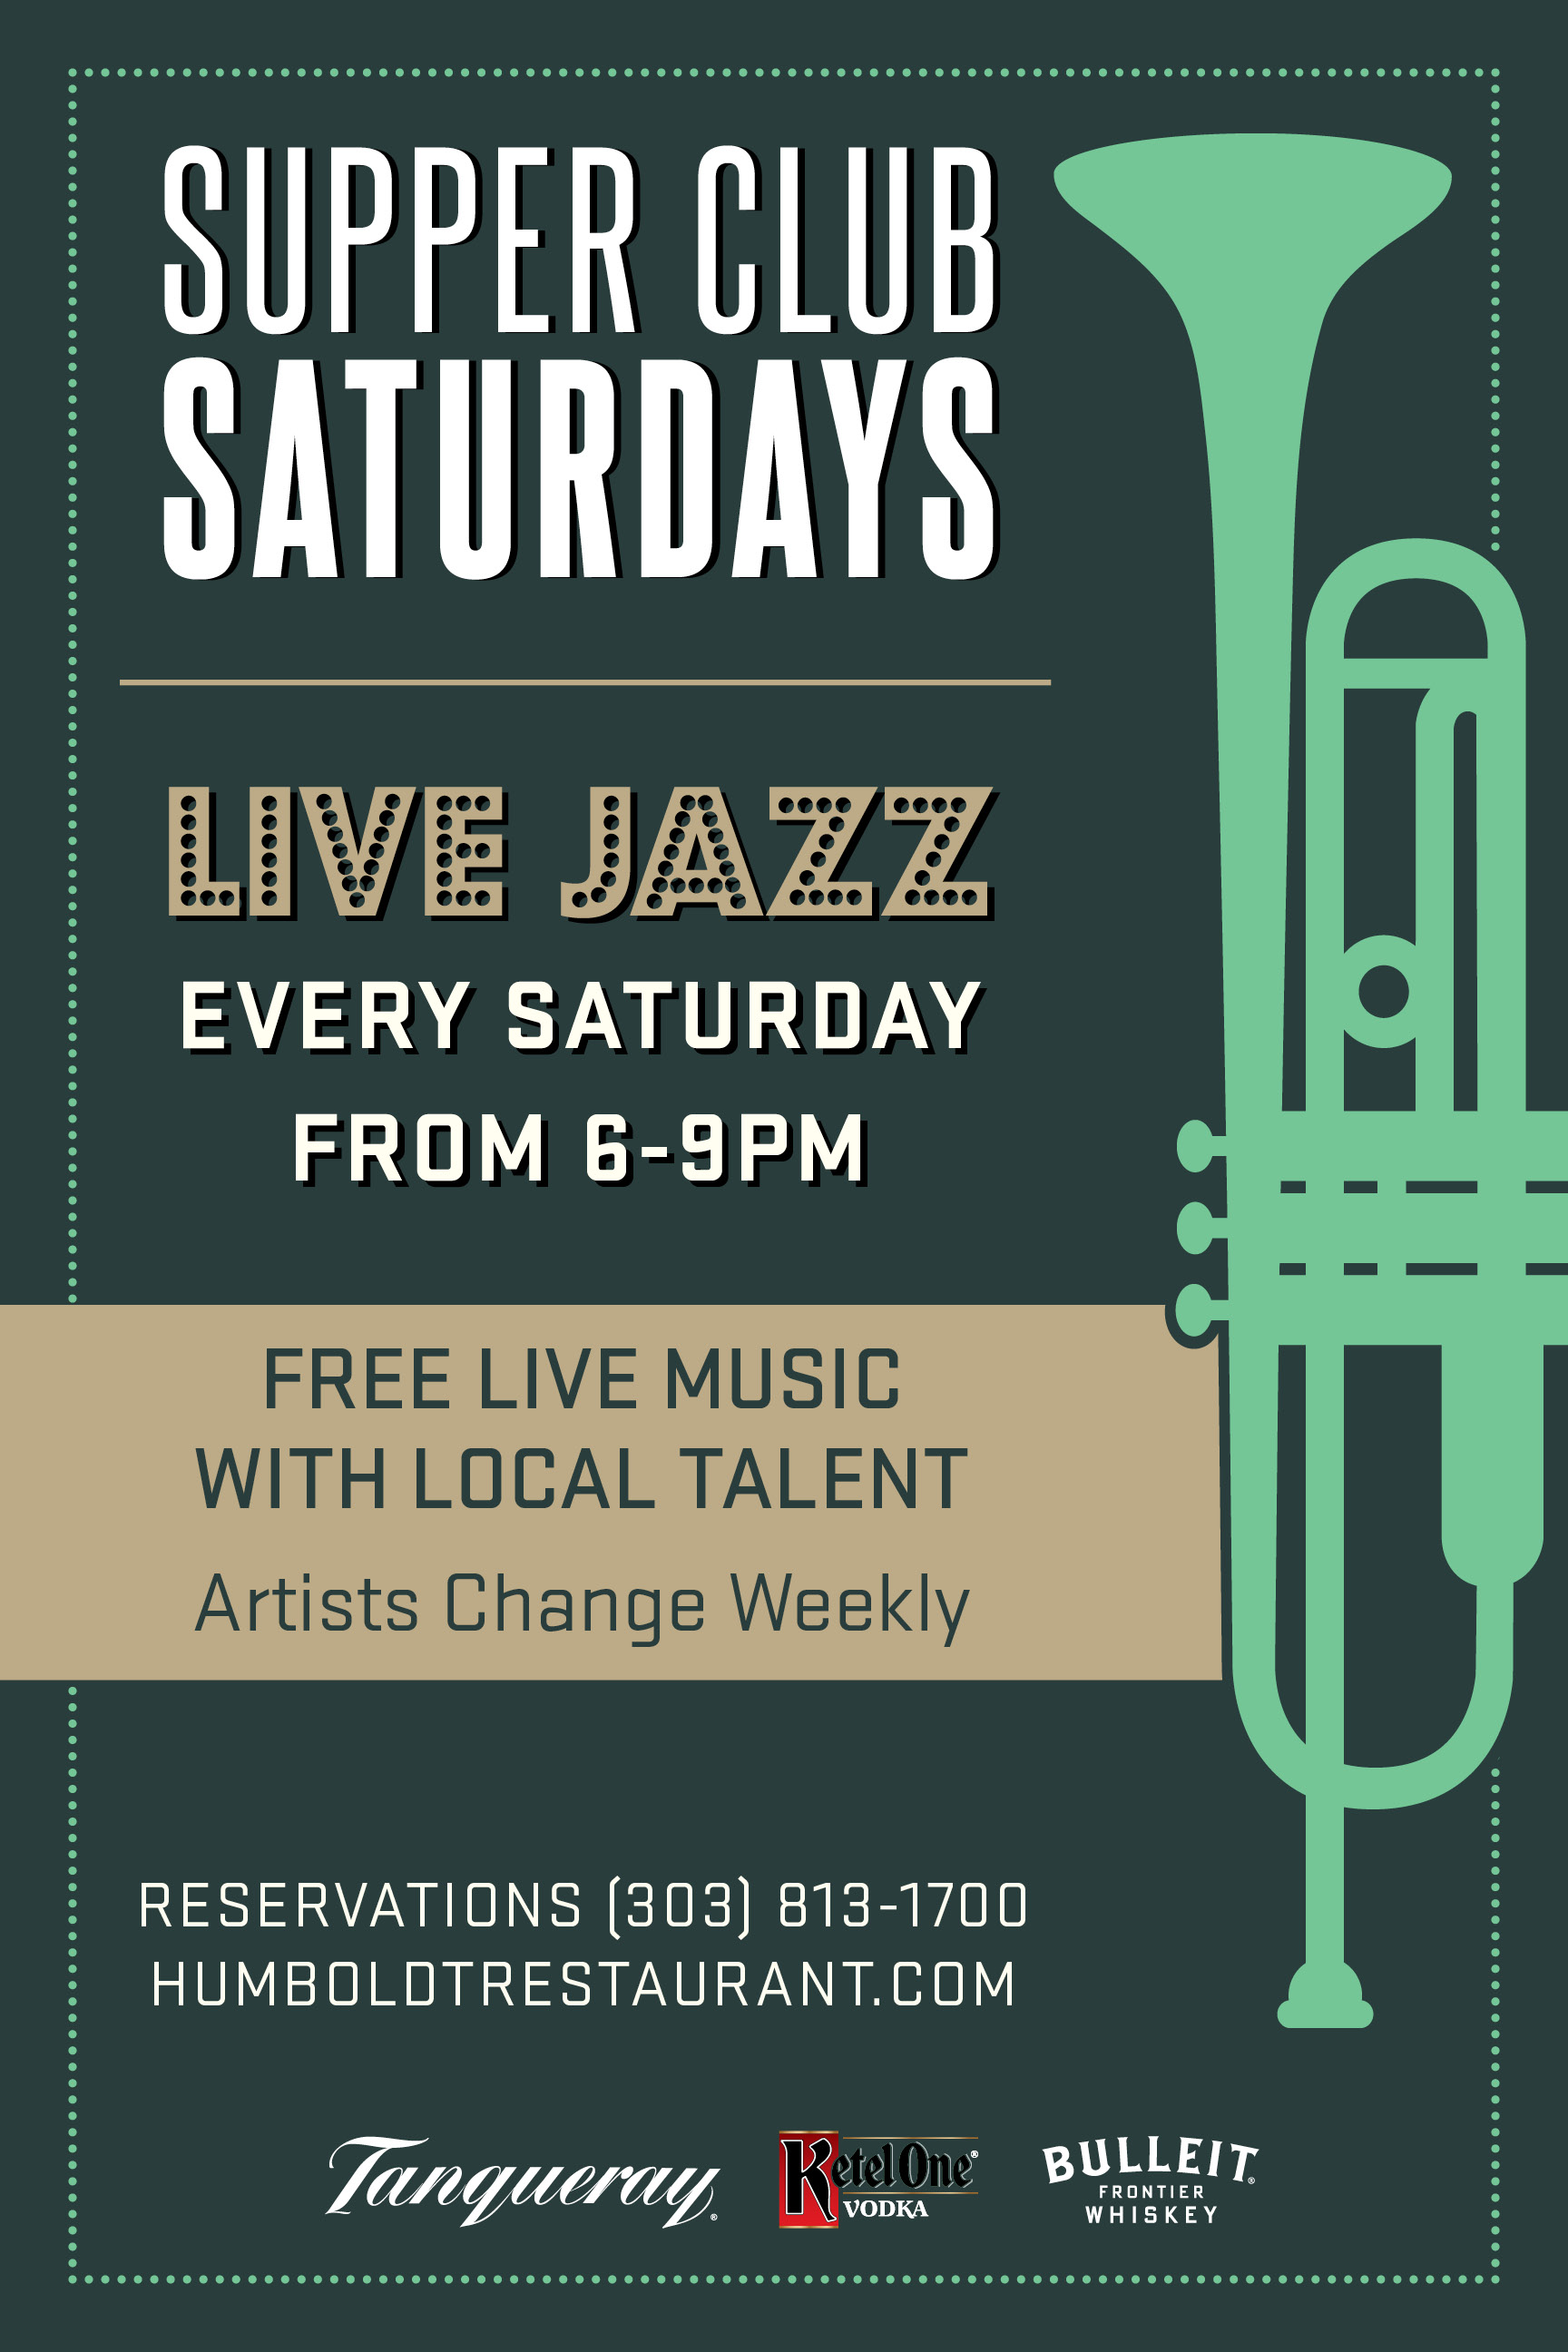 Supper Club Saturdays - Join us every Saturday for live music. We'd love to see you for dinner, for drinks or just for a good time! No Cover!